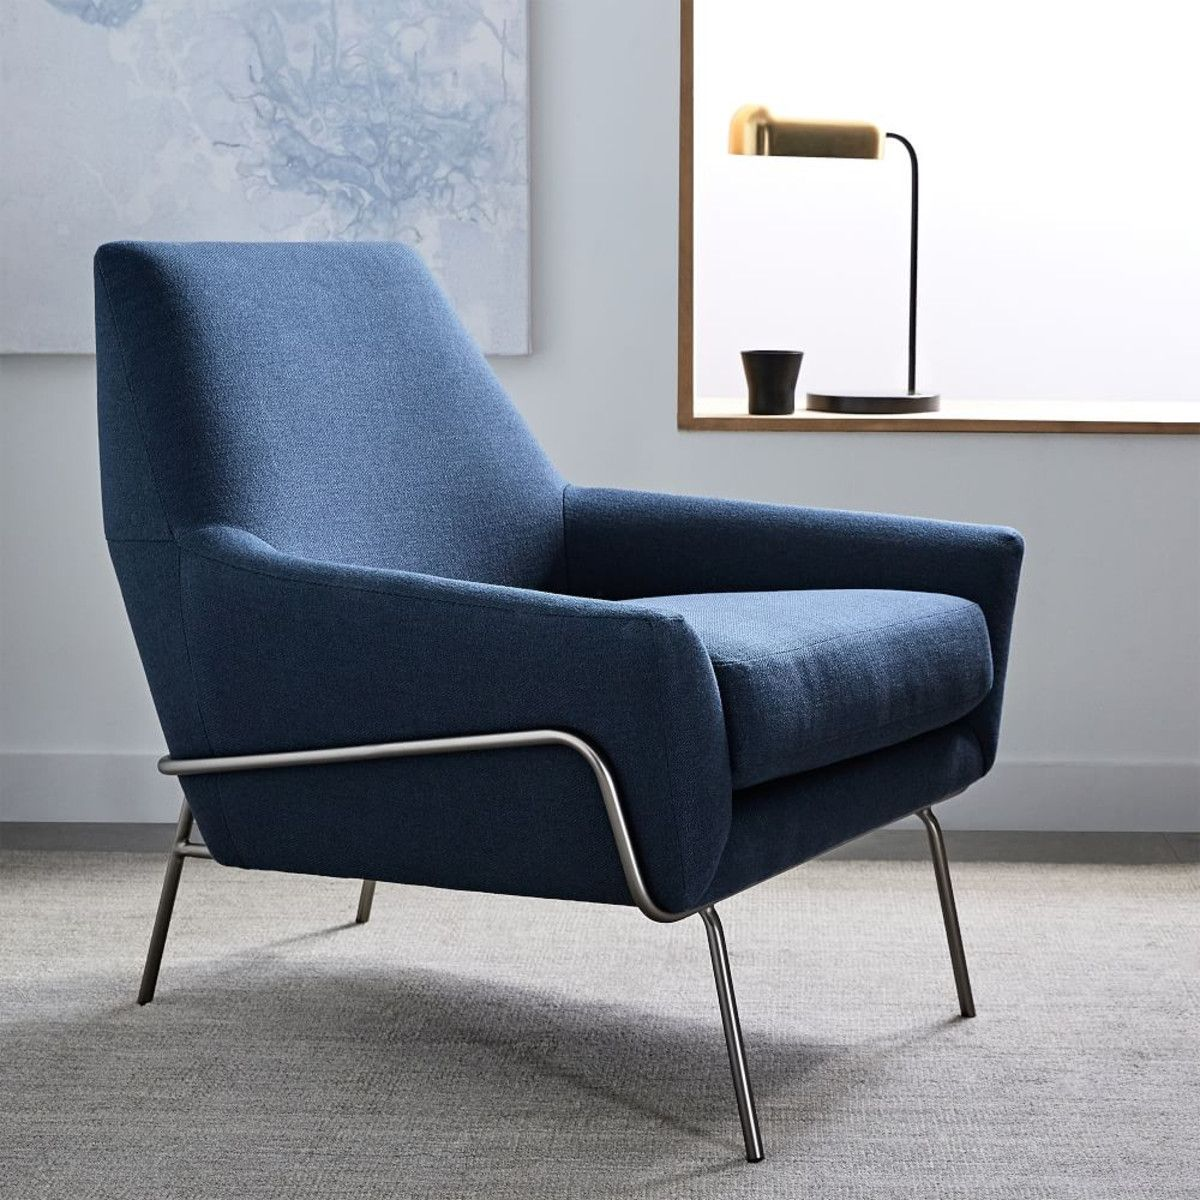 Lucas Wire Base Chair - Regal Blue | For the Home | Pinterest ...